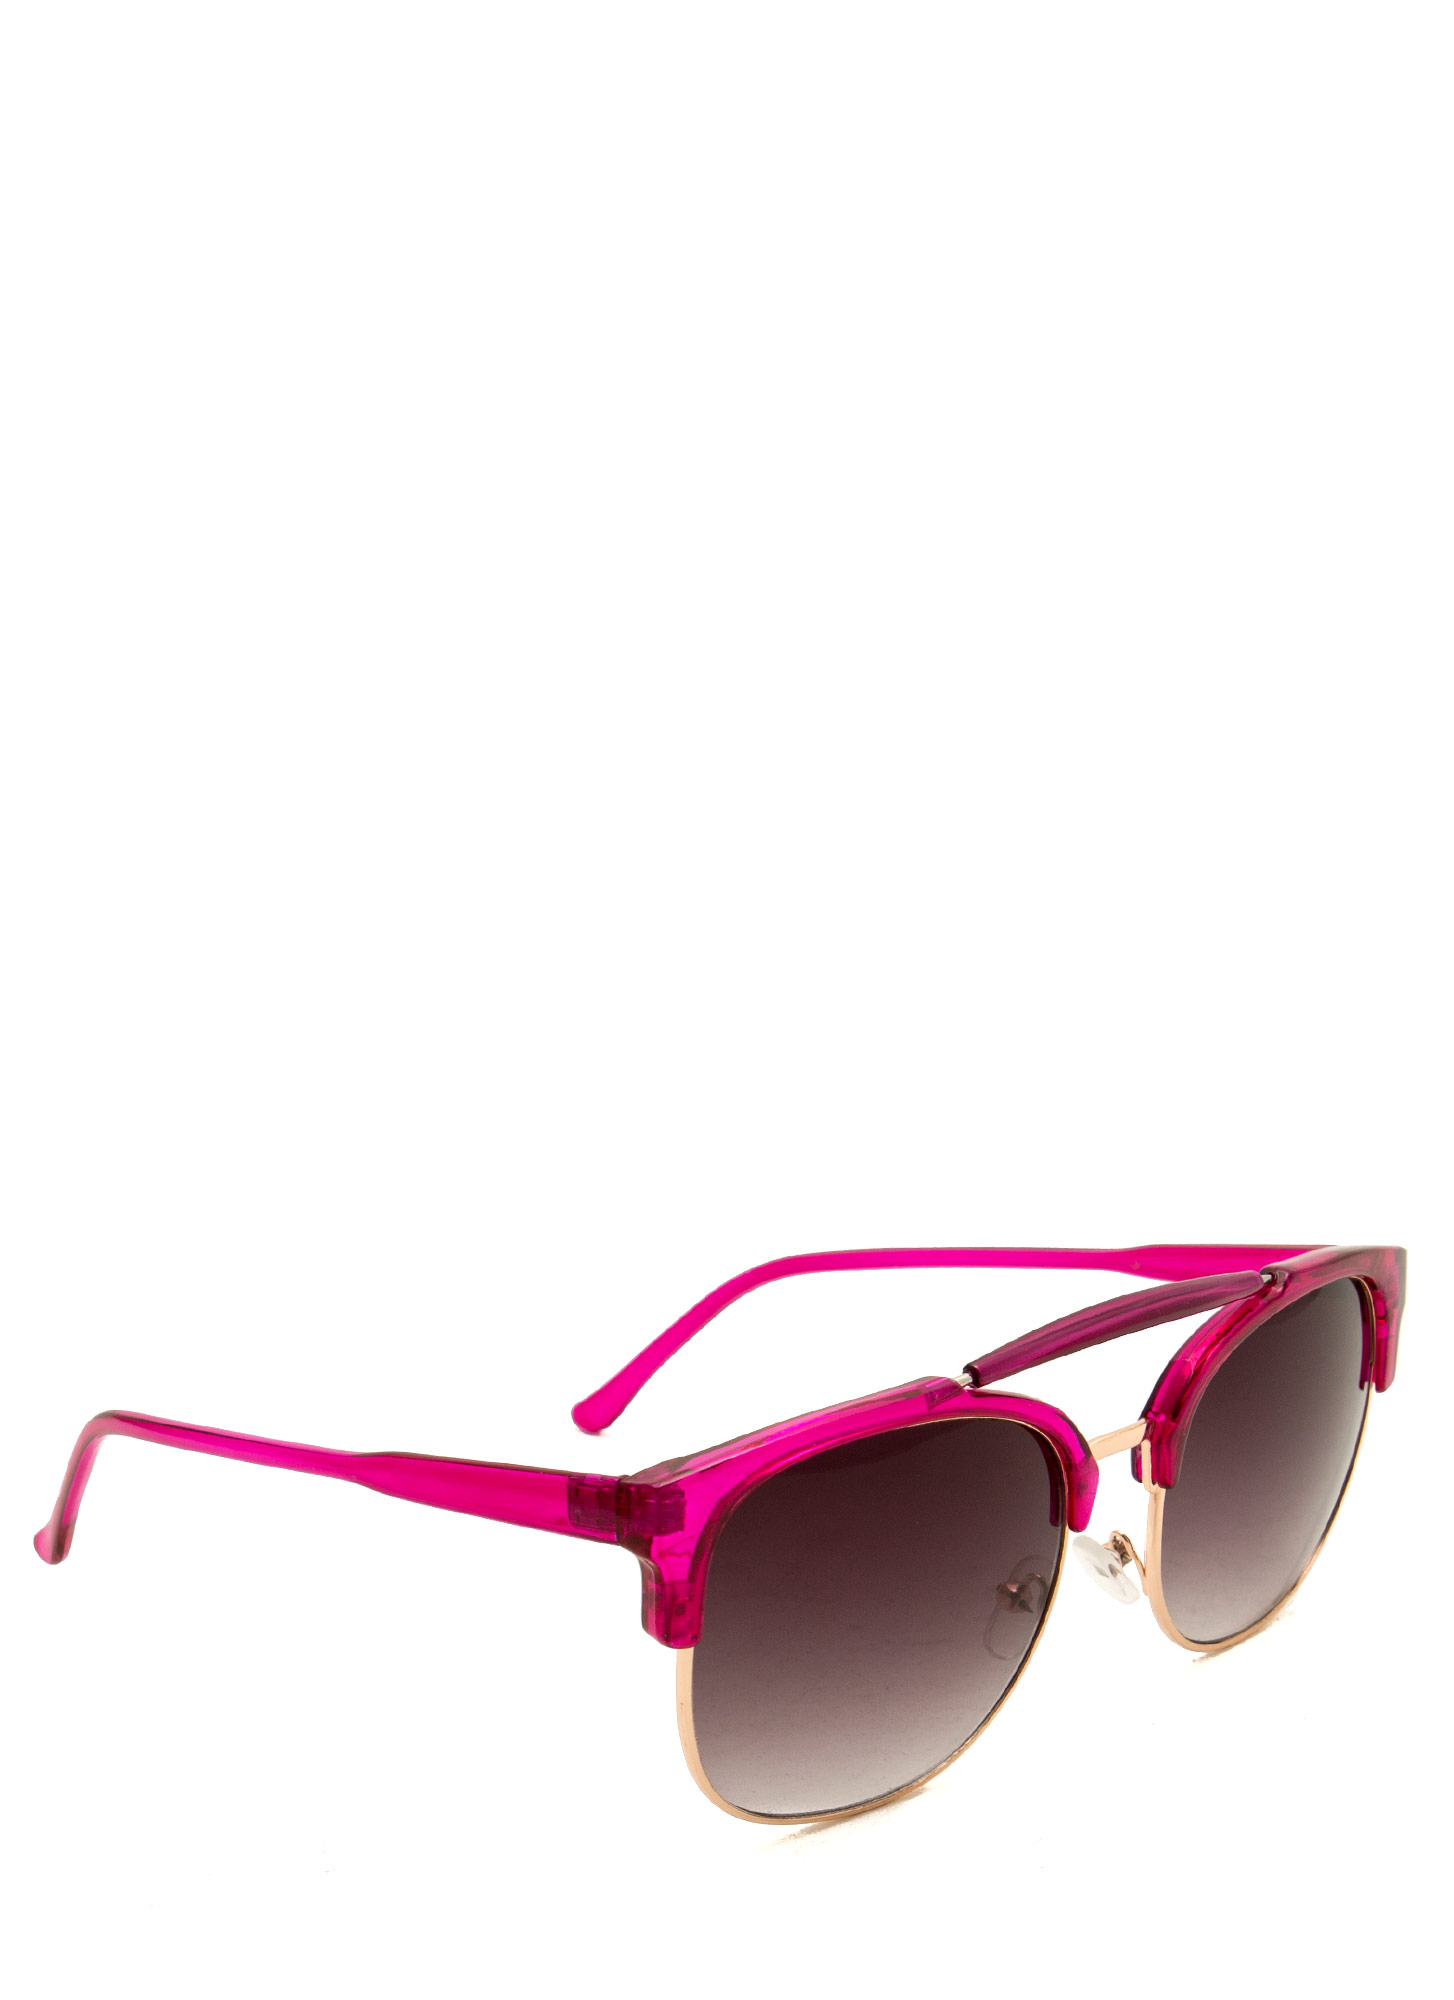 Top Bar Browline Sunglasses FUCHGOLD